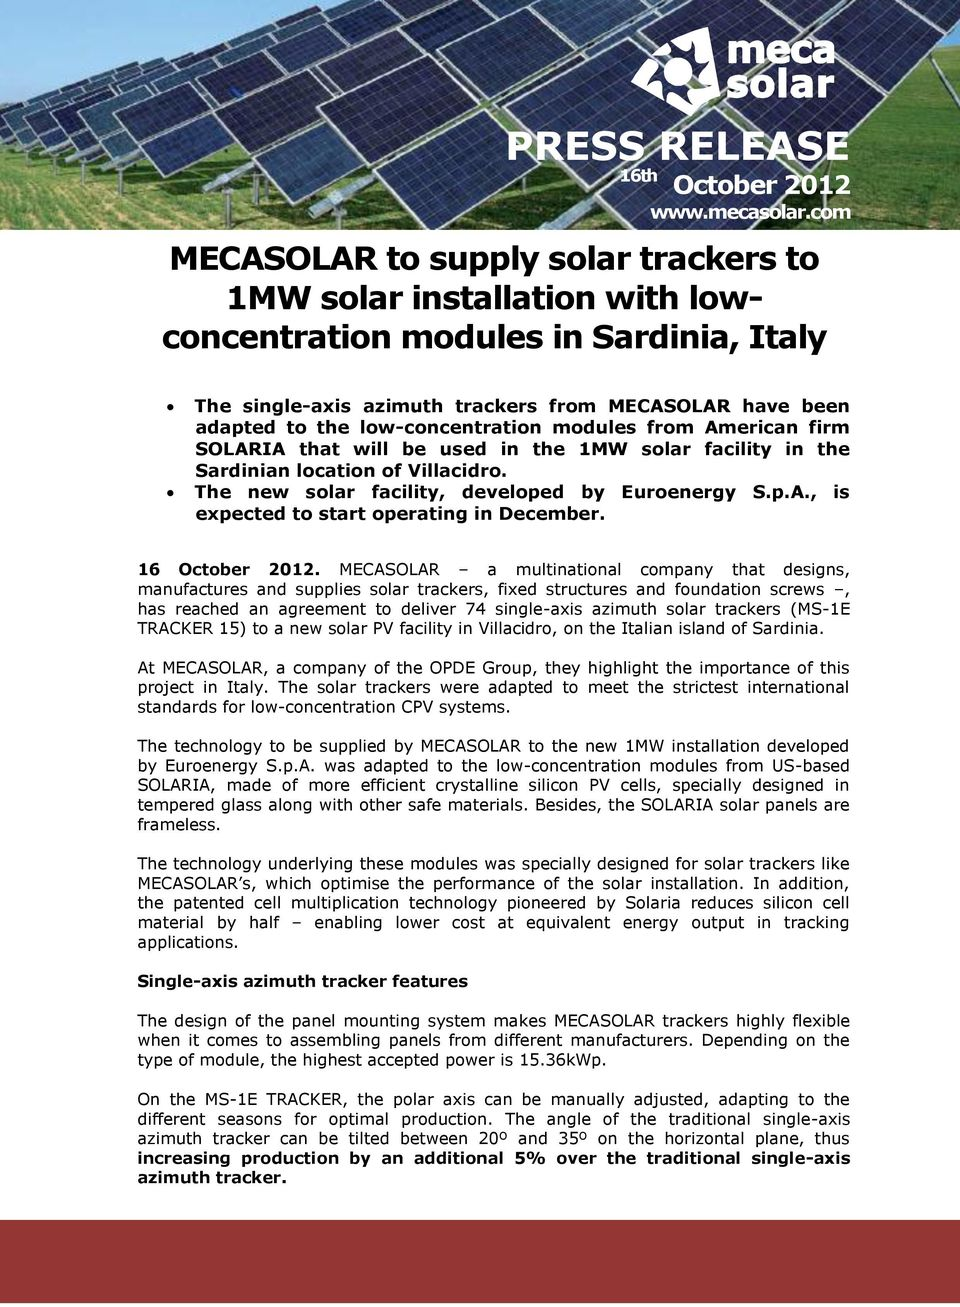 low-concentration modules from American firm SOLARIA that will be used in the 1MW solar facility in the Sardinian location of Villacidro. The new solar facility, developed by Euroenergy S.p.A., is expected to start operating in December.